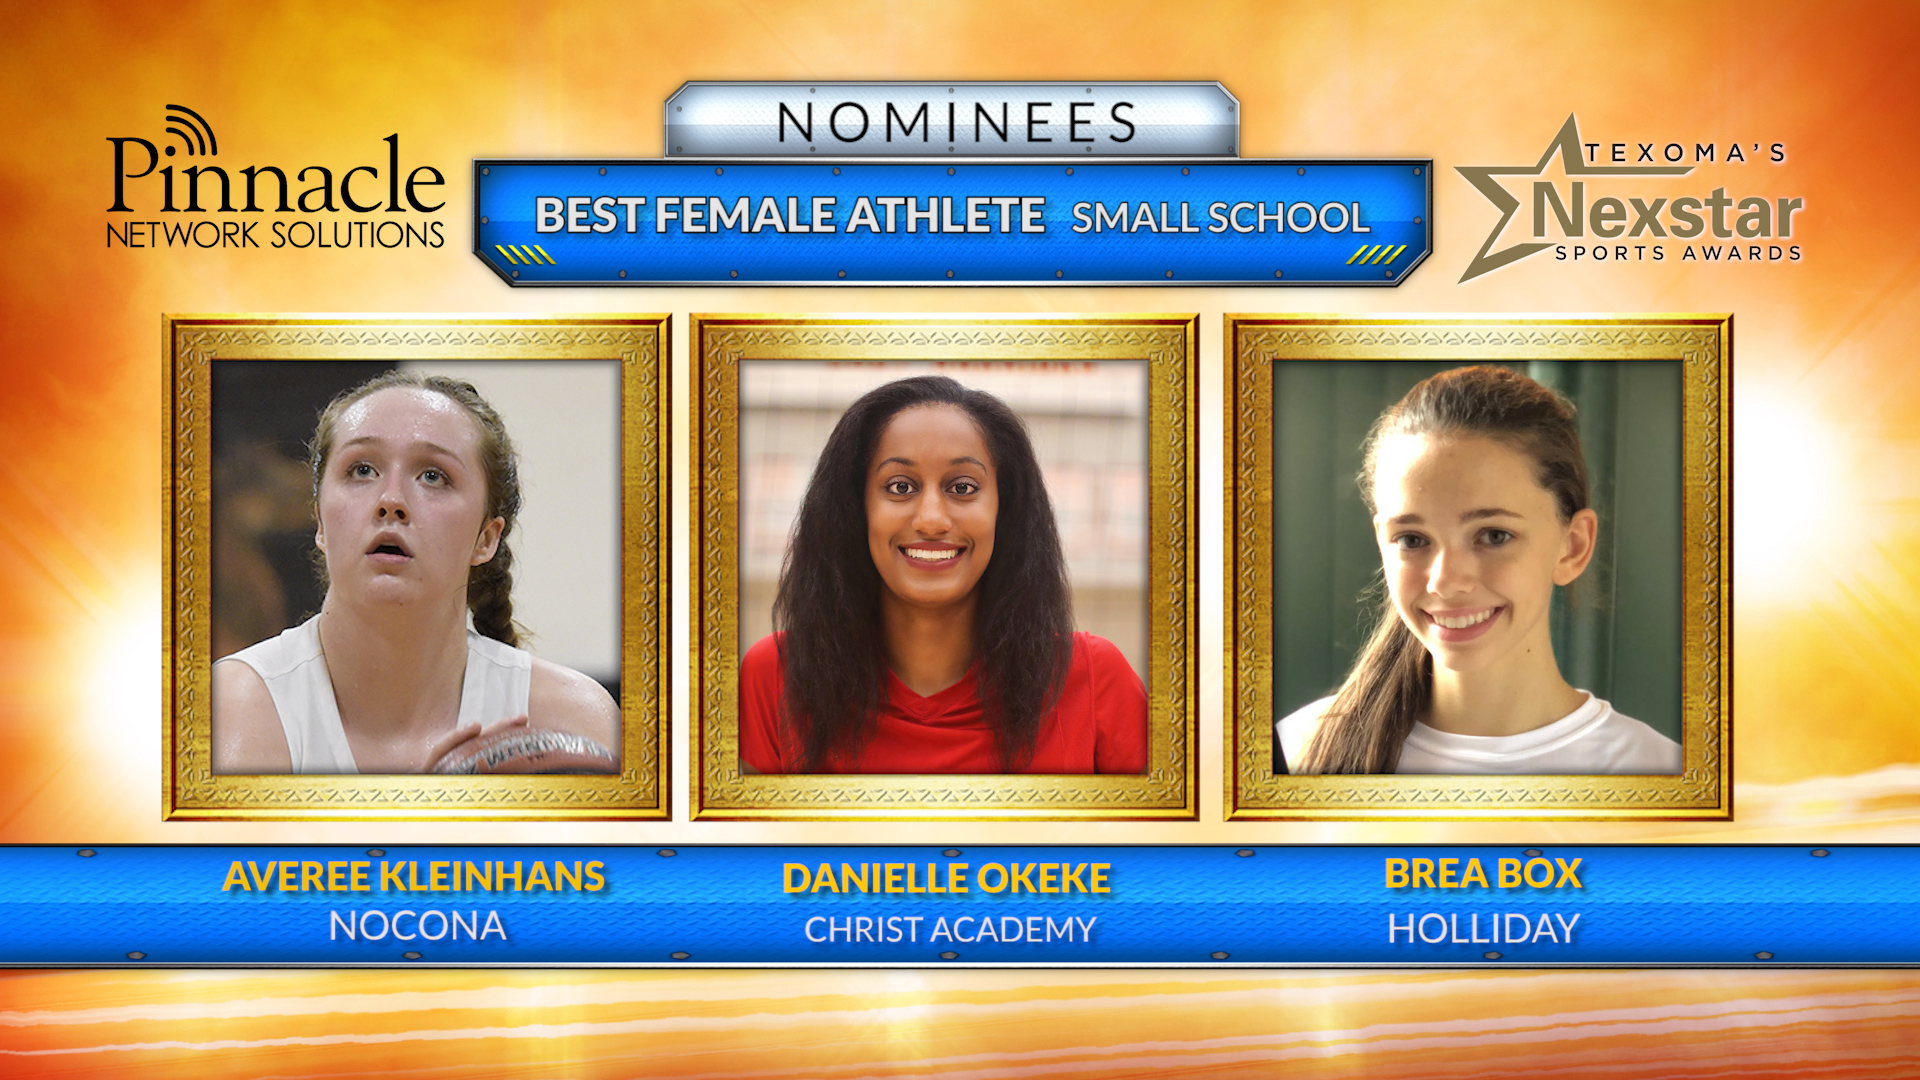 best female athlete small school_1559961177618.jpg.jpg